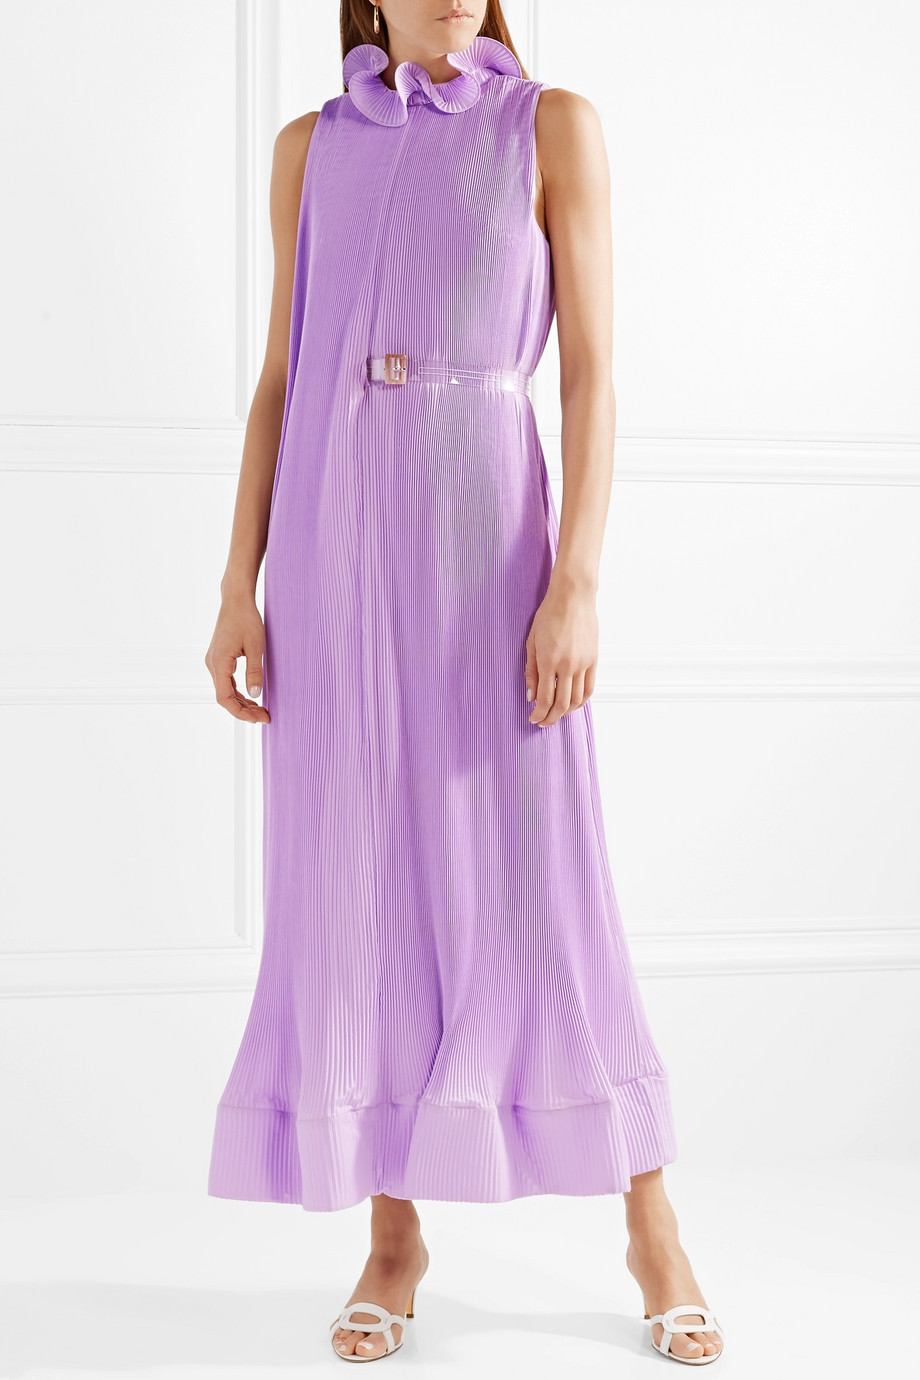 The Perfect Spring Wedding Guest Dress – Closetful of Clothes